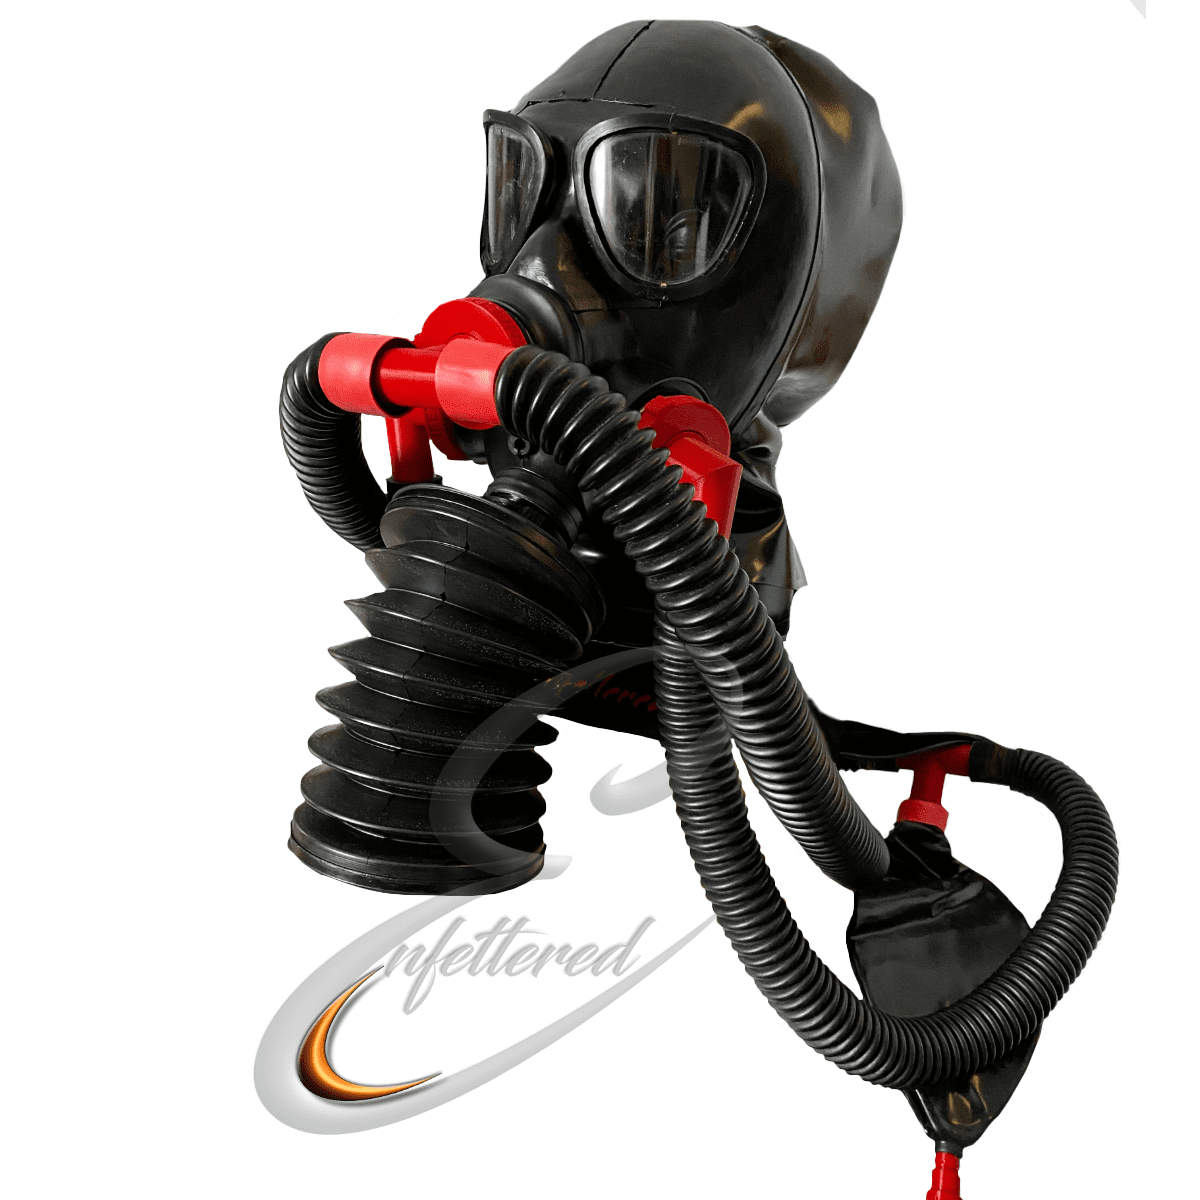 Enfettered Gas Mask Hood with Double Ring Tube Bellows System